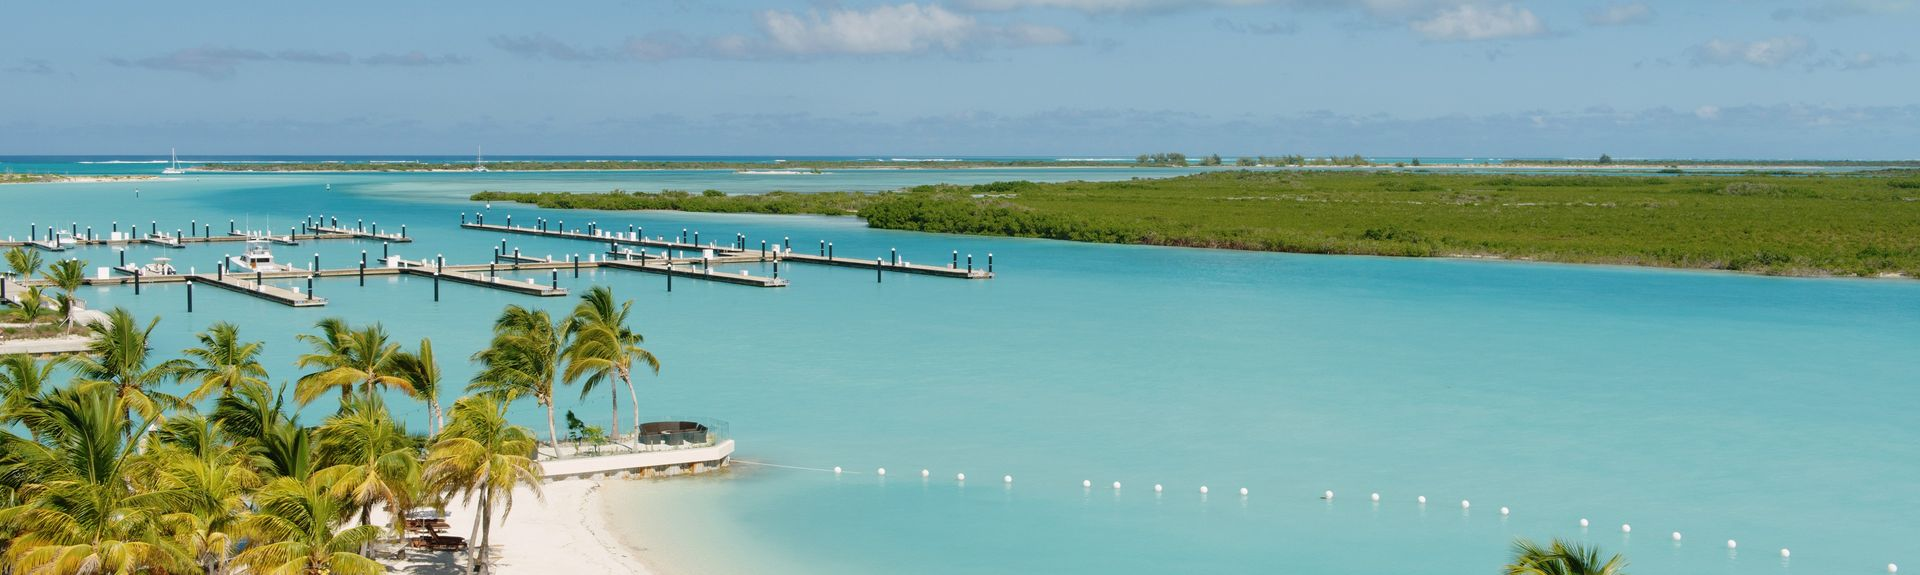 Providenciales, Caicos Islands